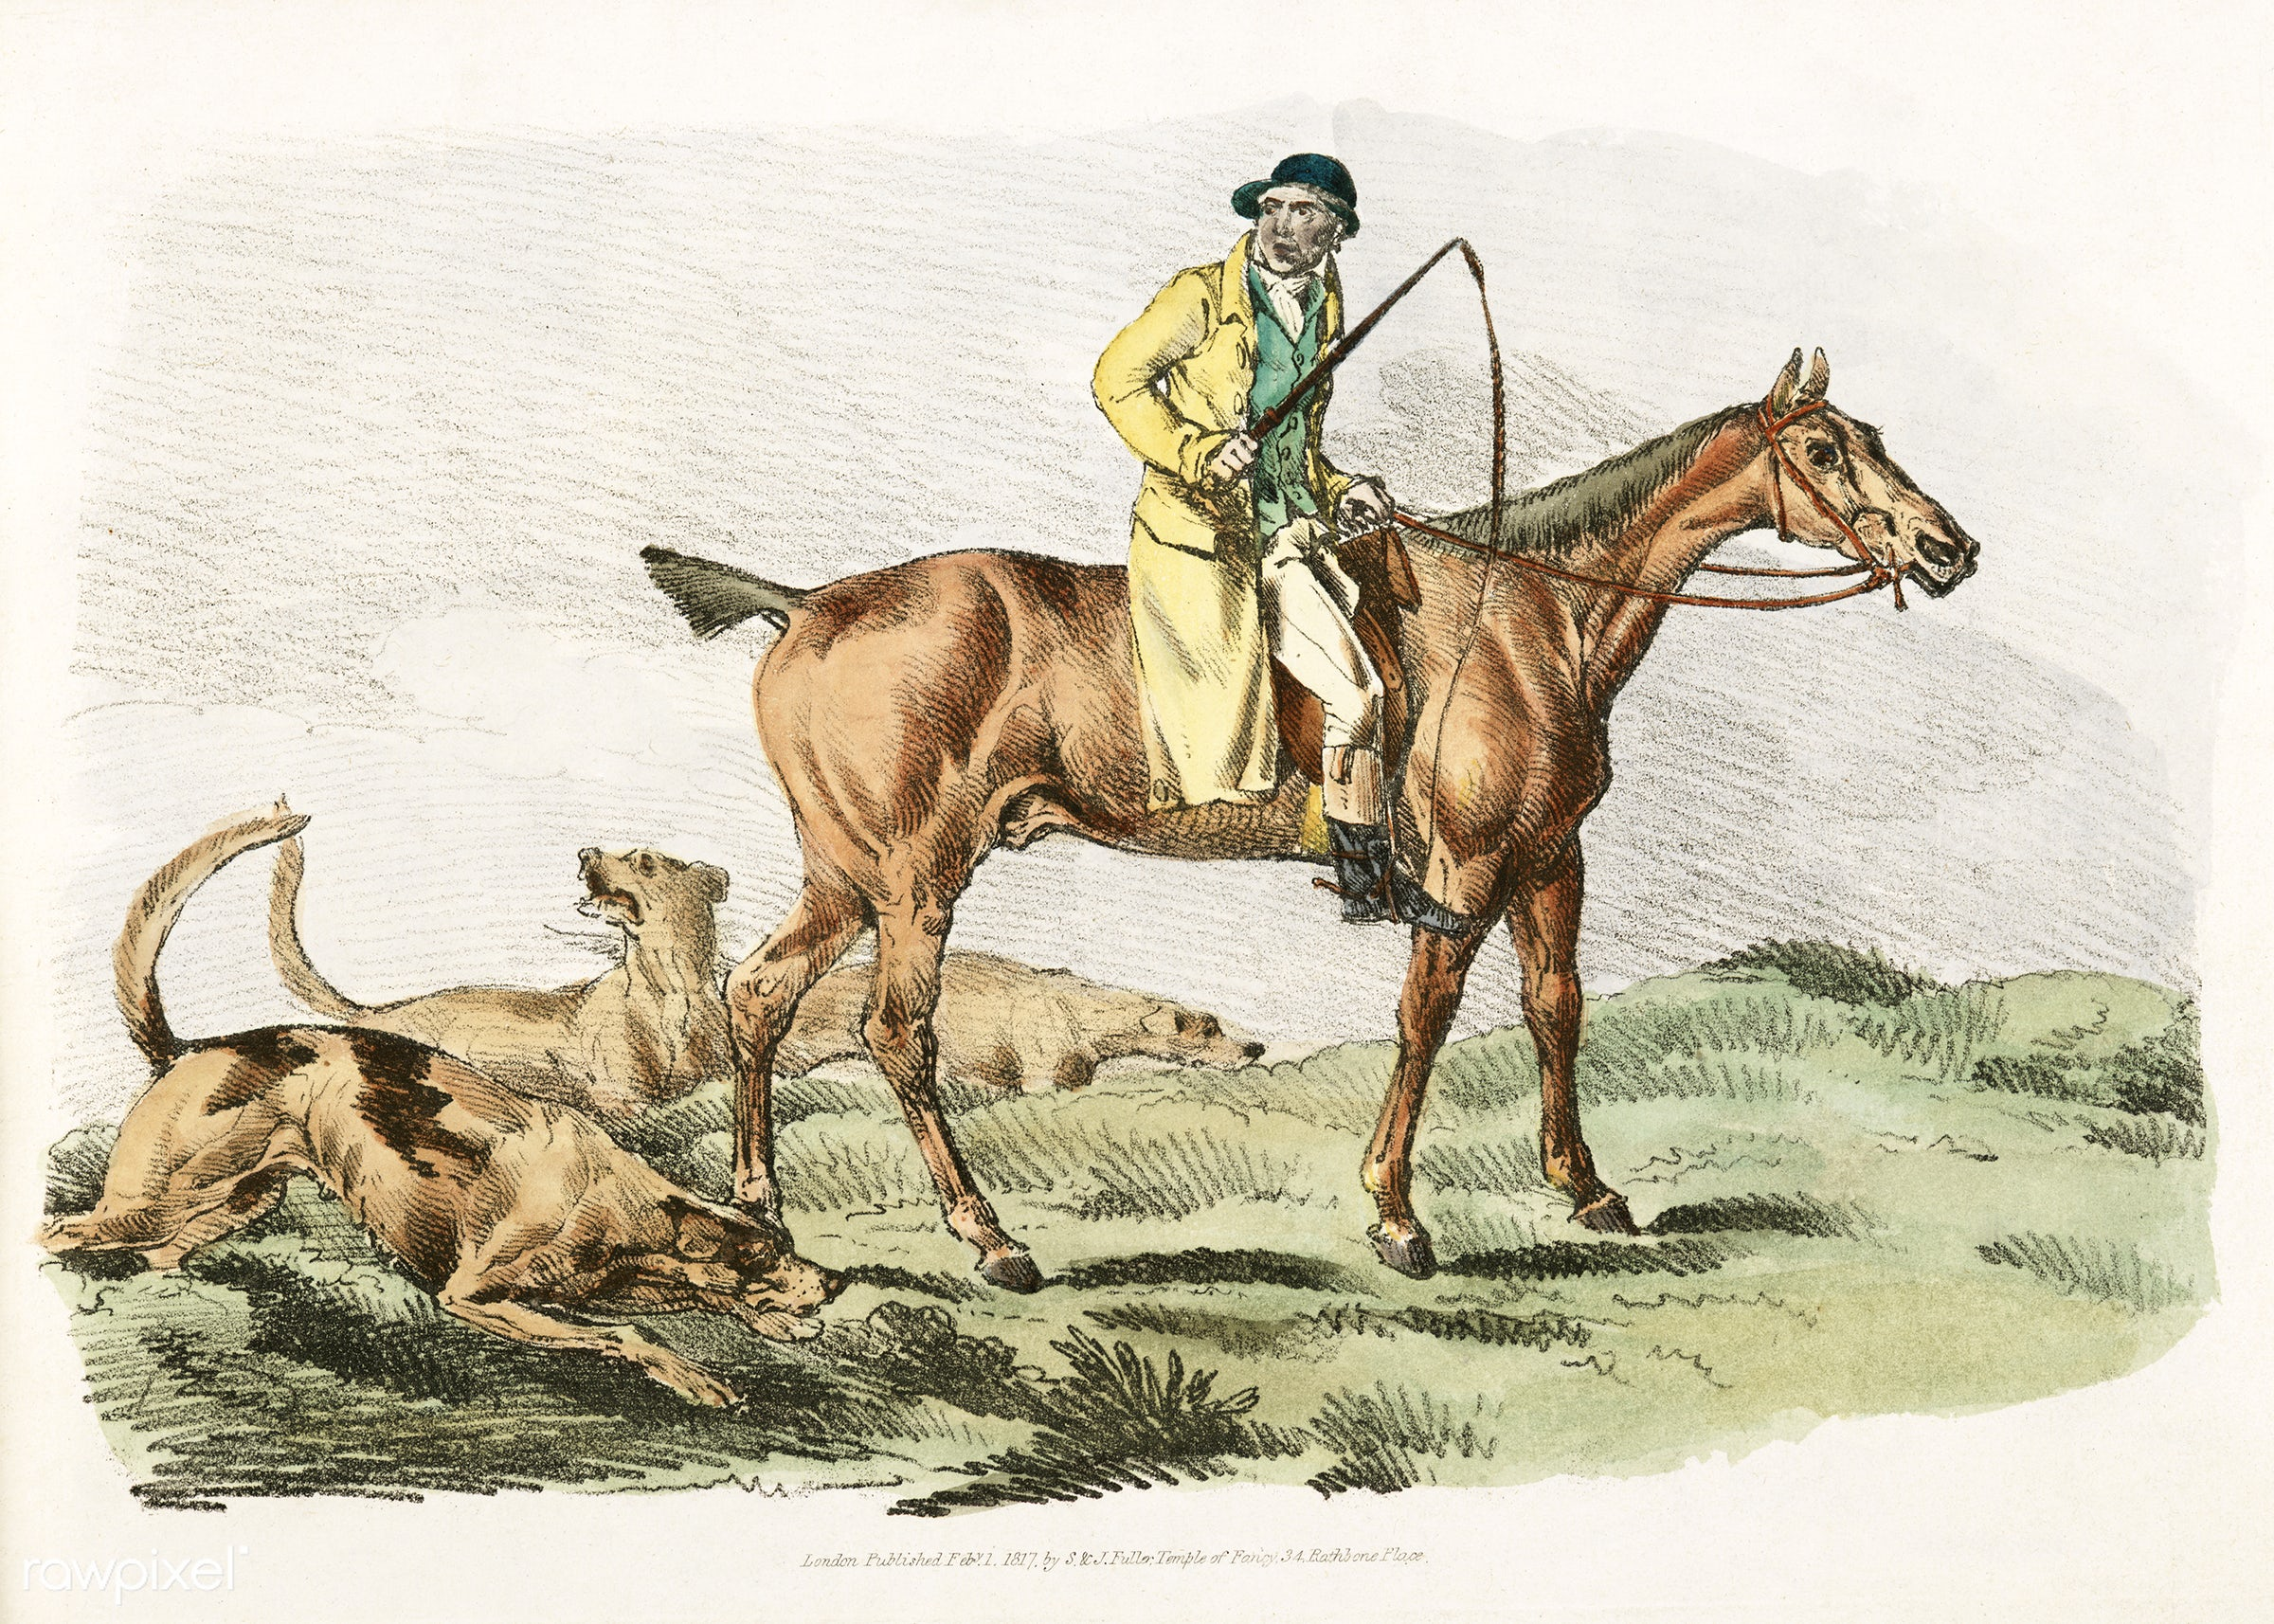 Illustration of mounted hunter with three hounds running behind from Sporting Sketches (1817-1818) by Henry Alken (1784-1851...